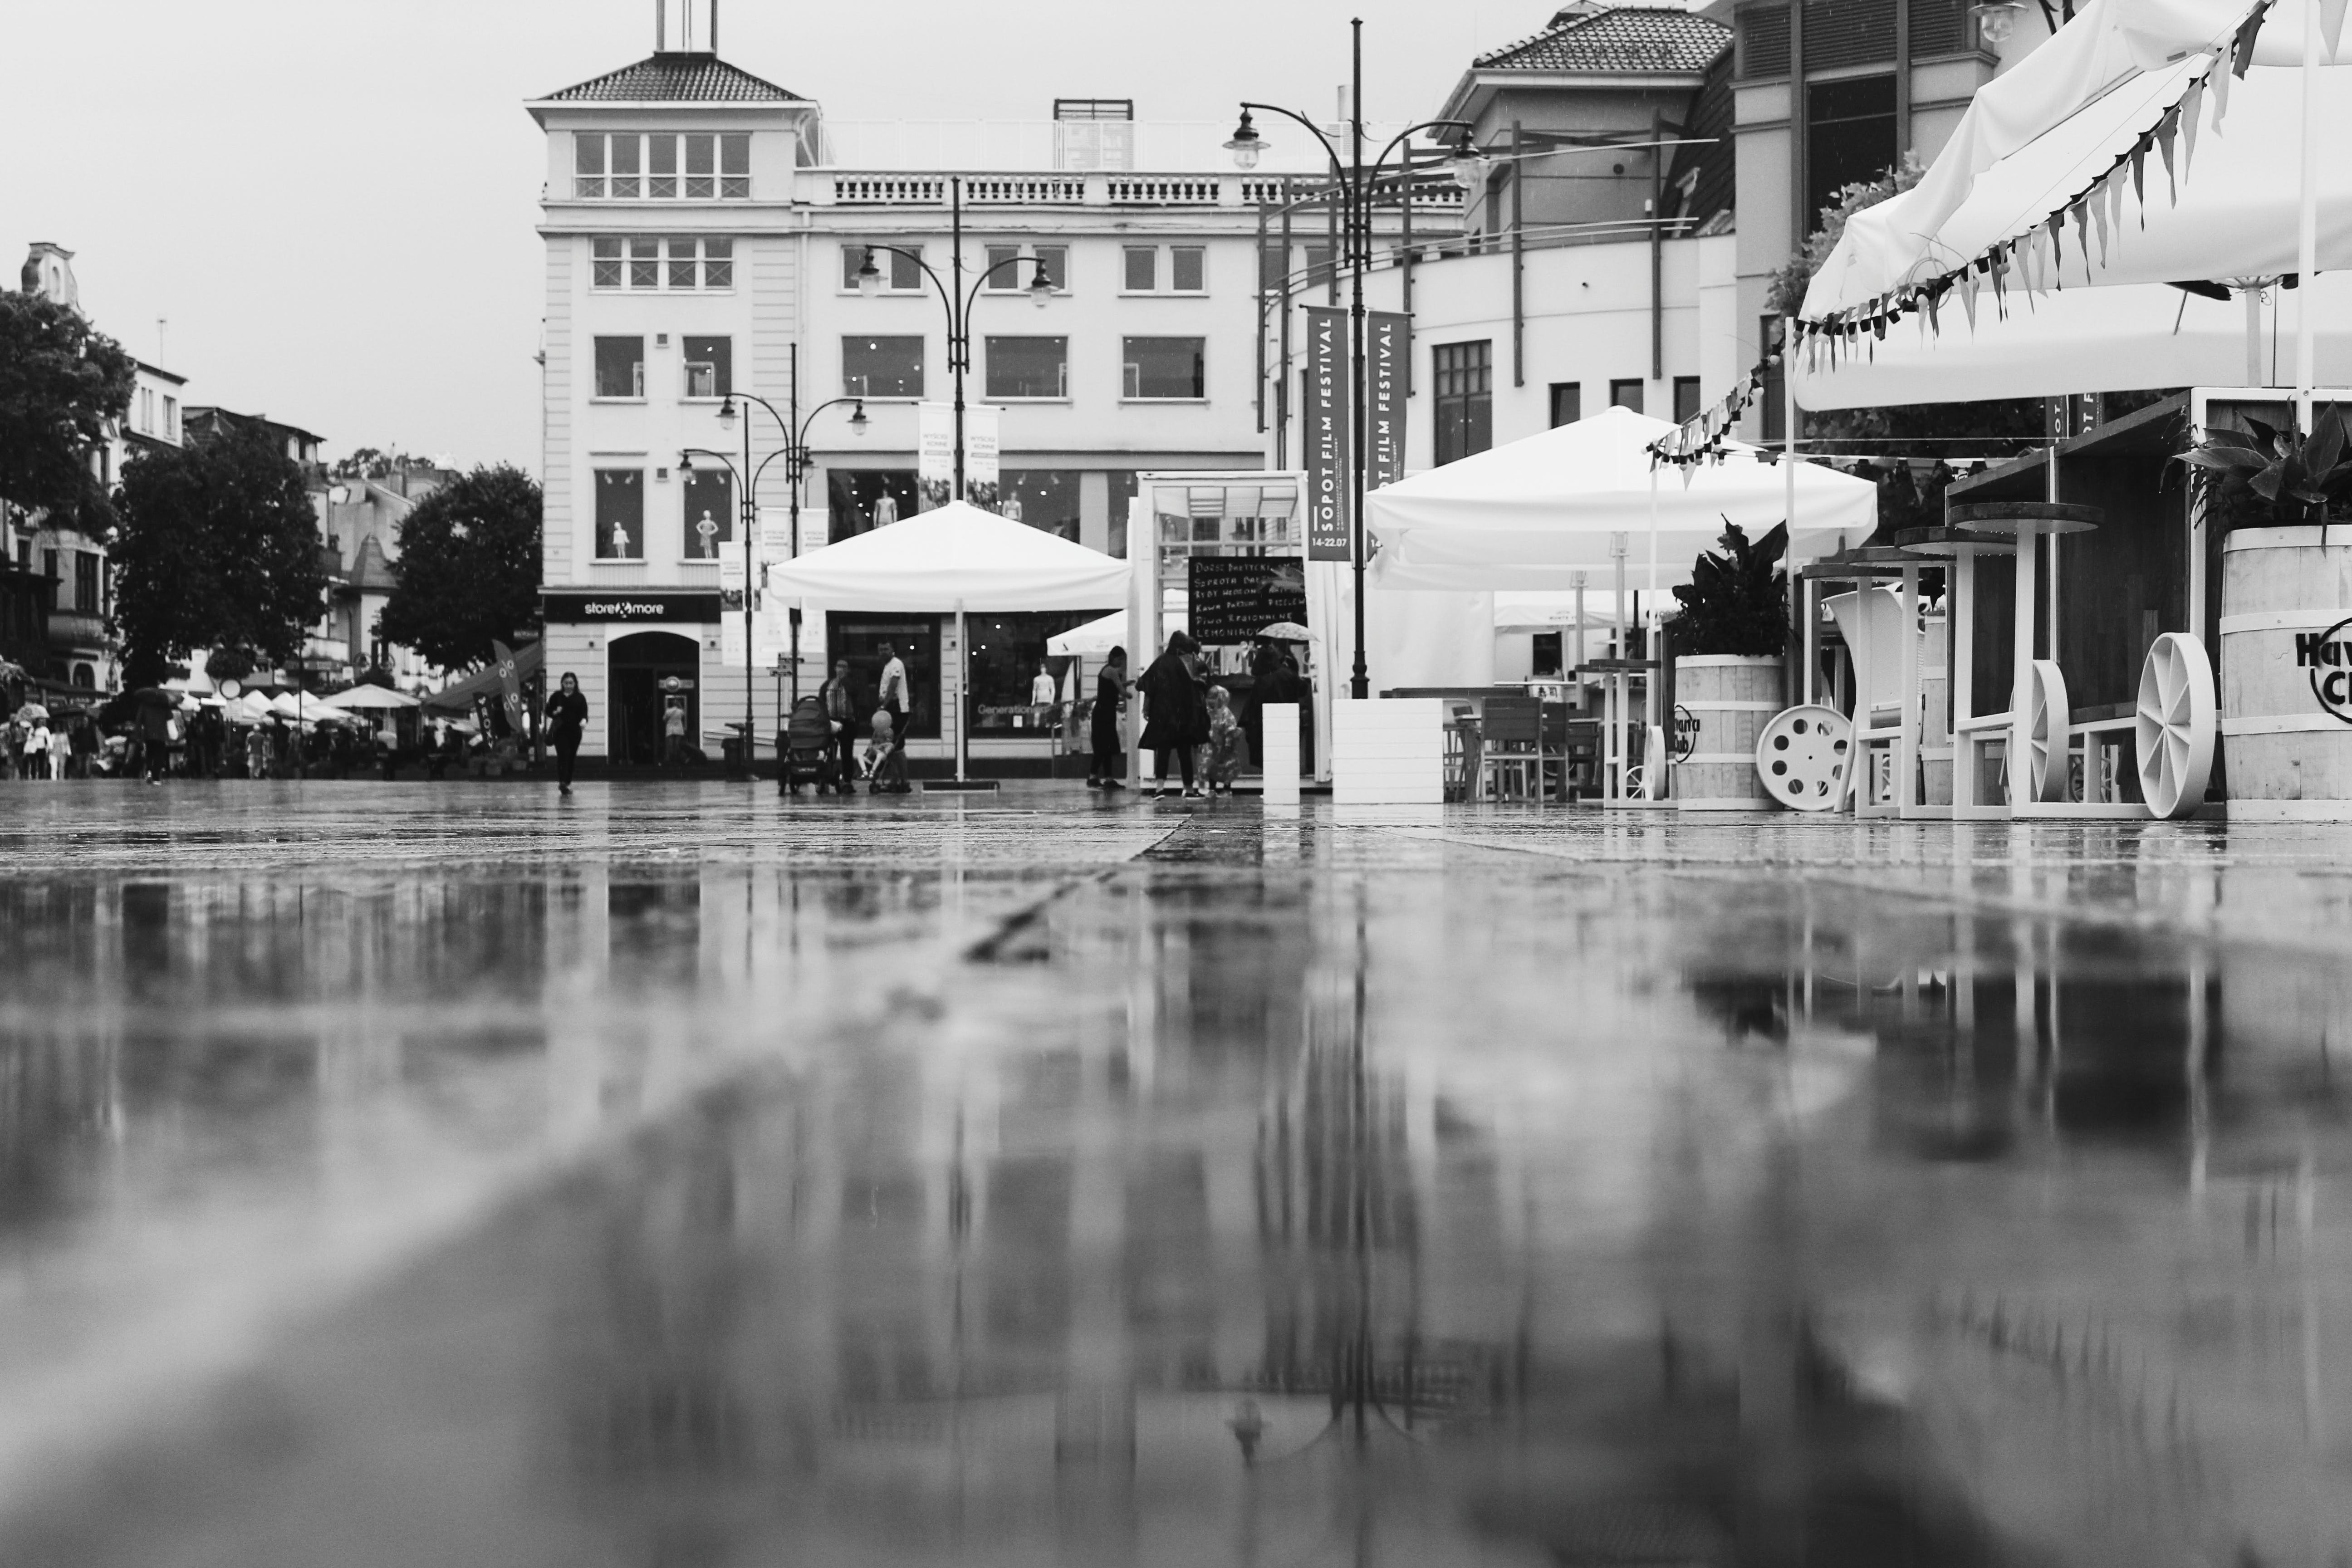 Greyscale Photography of City Building